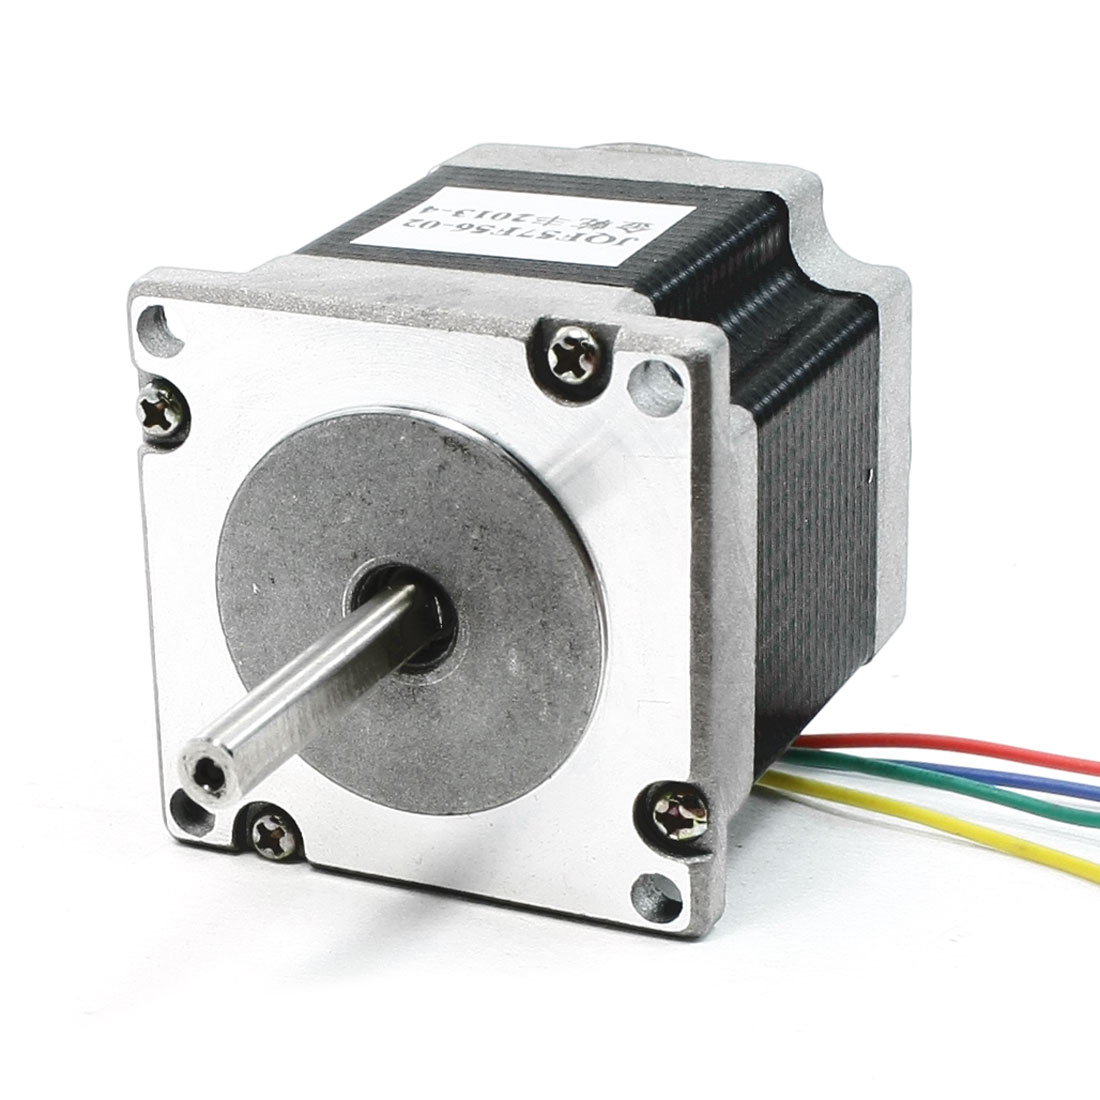 2 Phase 6.5mm Single Shaft JQF57Y56-02 Model Stepper Stepping Motor 2A